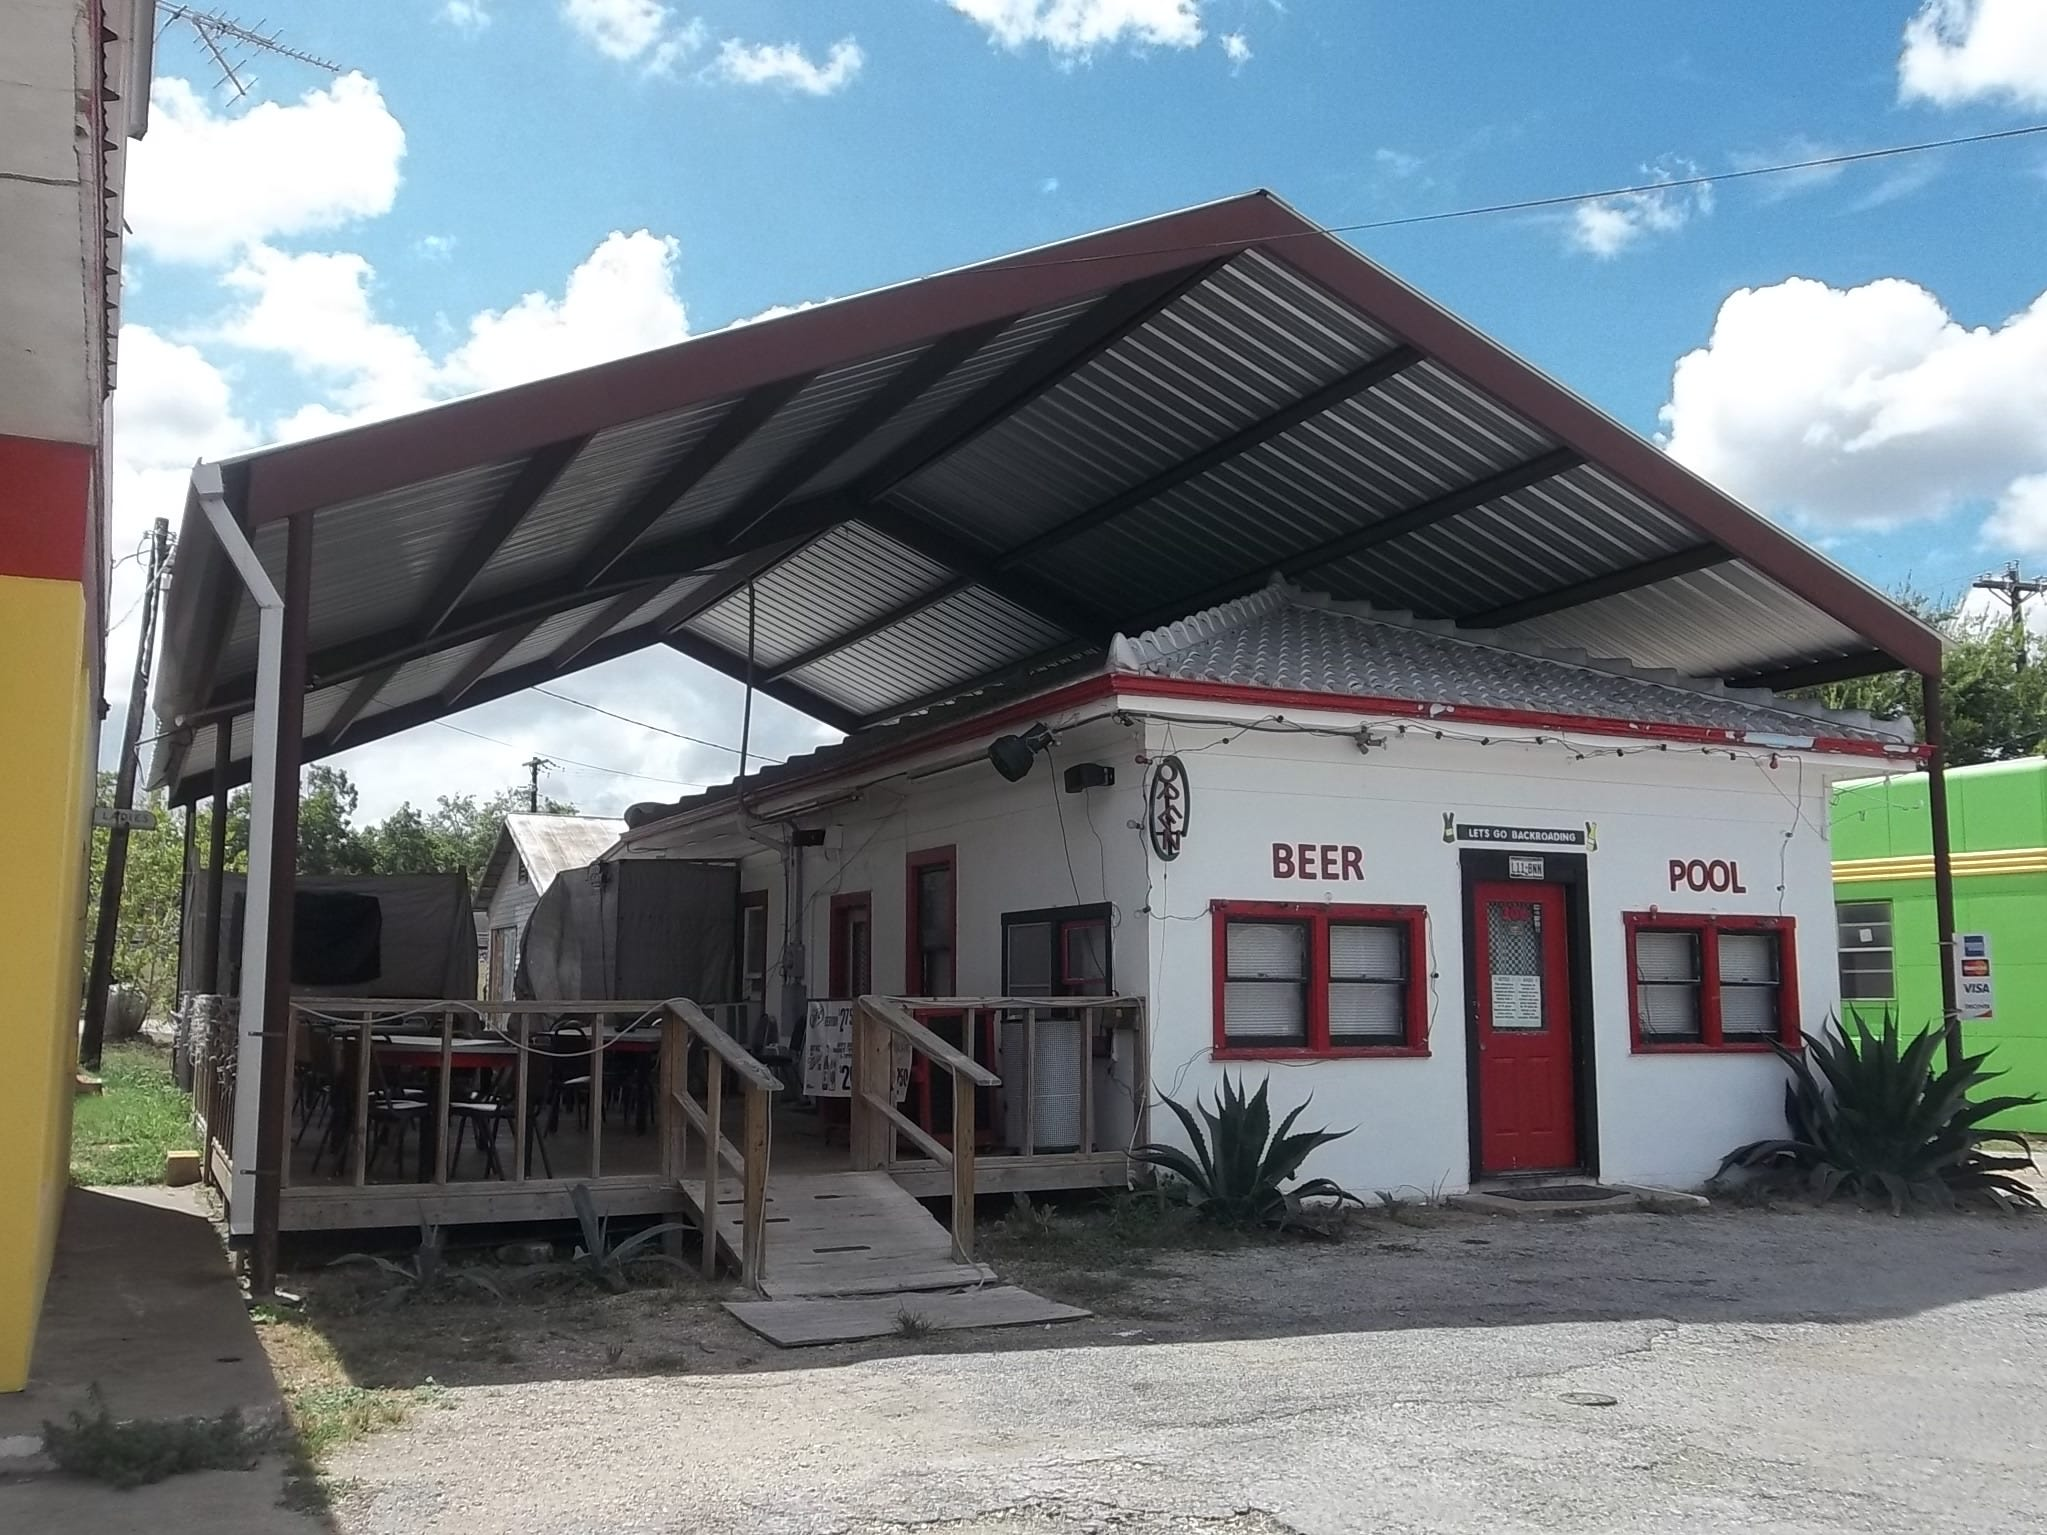 Tommy Tipton owns this commercial building at 306 E. North Main St. in Flatonia, Texas. Its market value is  $38,750.